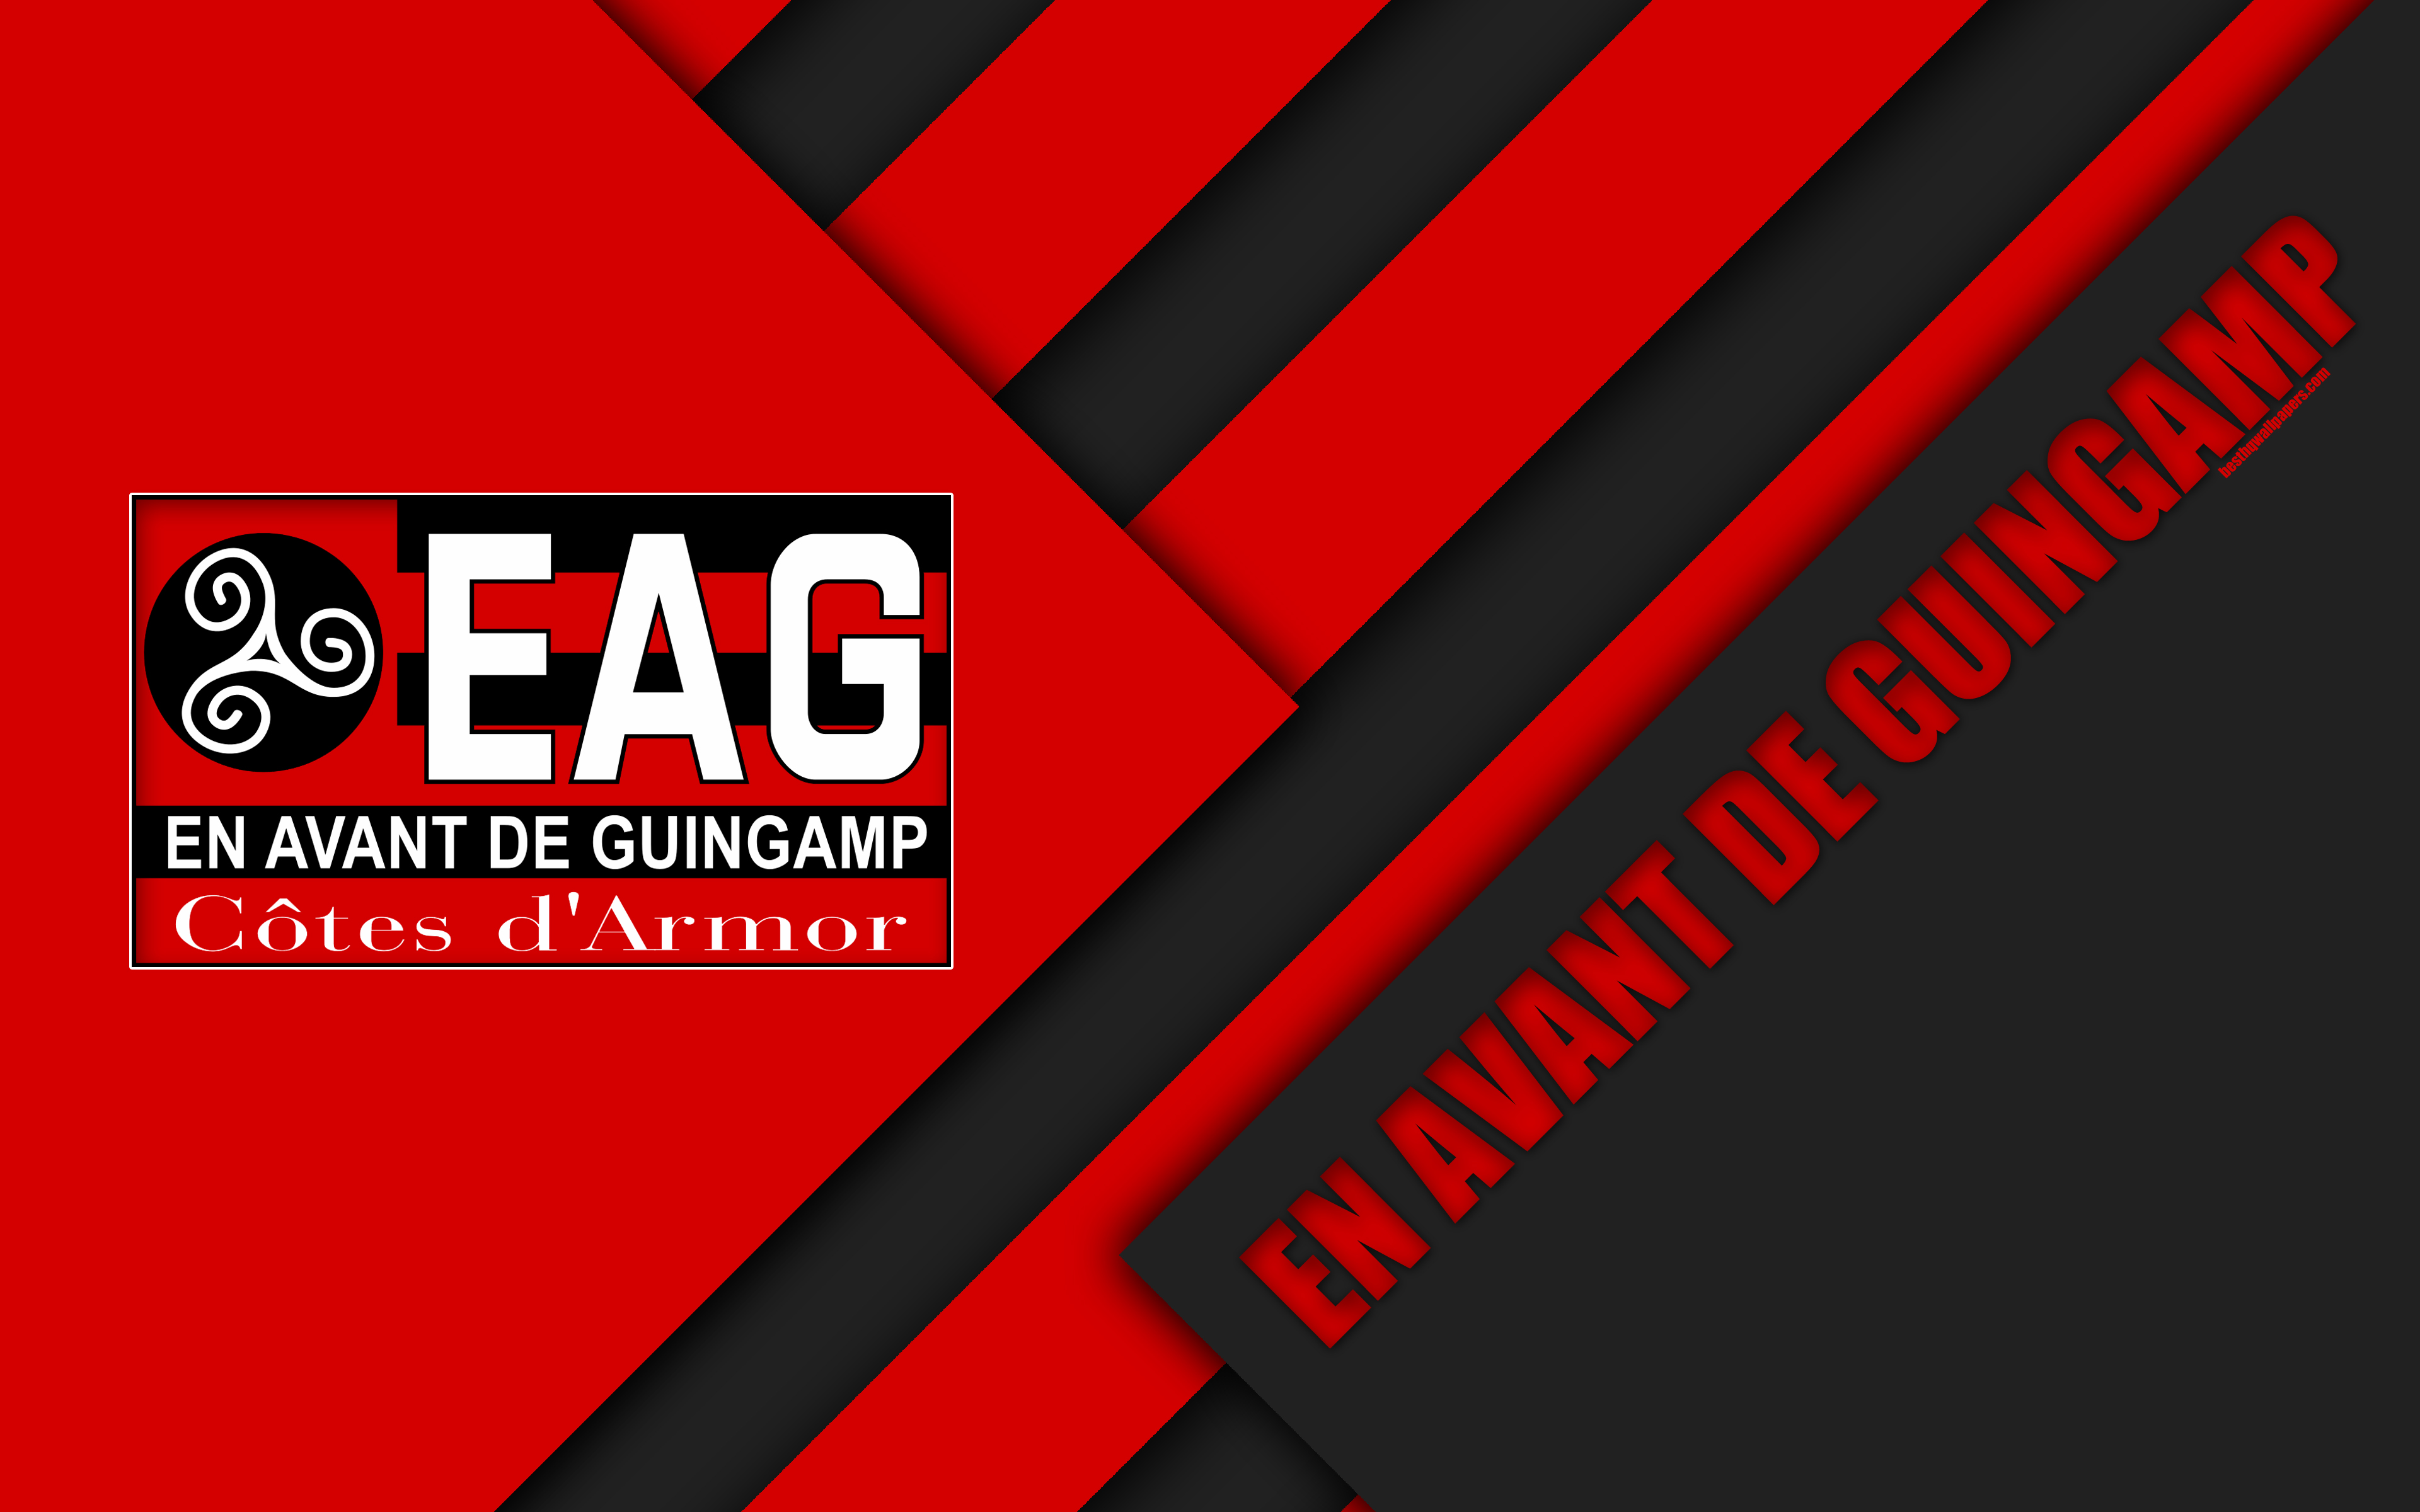 Download wallpapers En Avant de Guingamp, 4k, material design